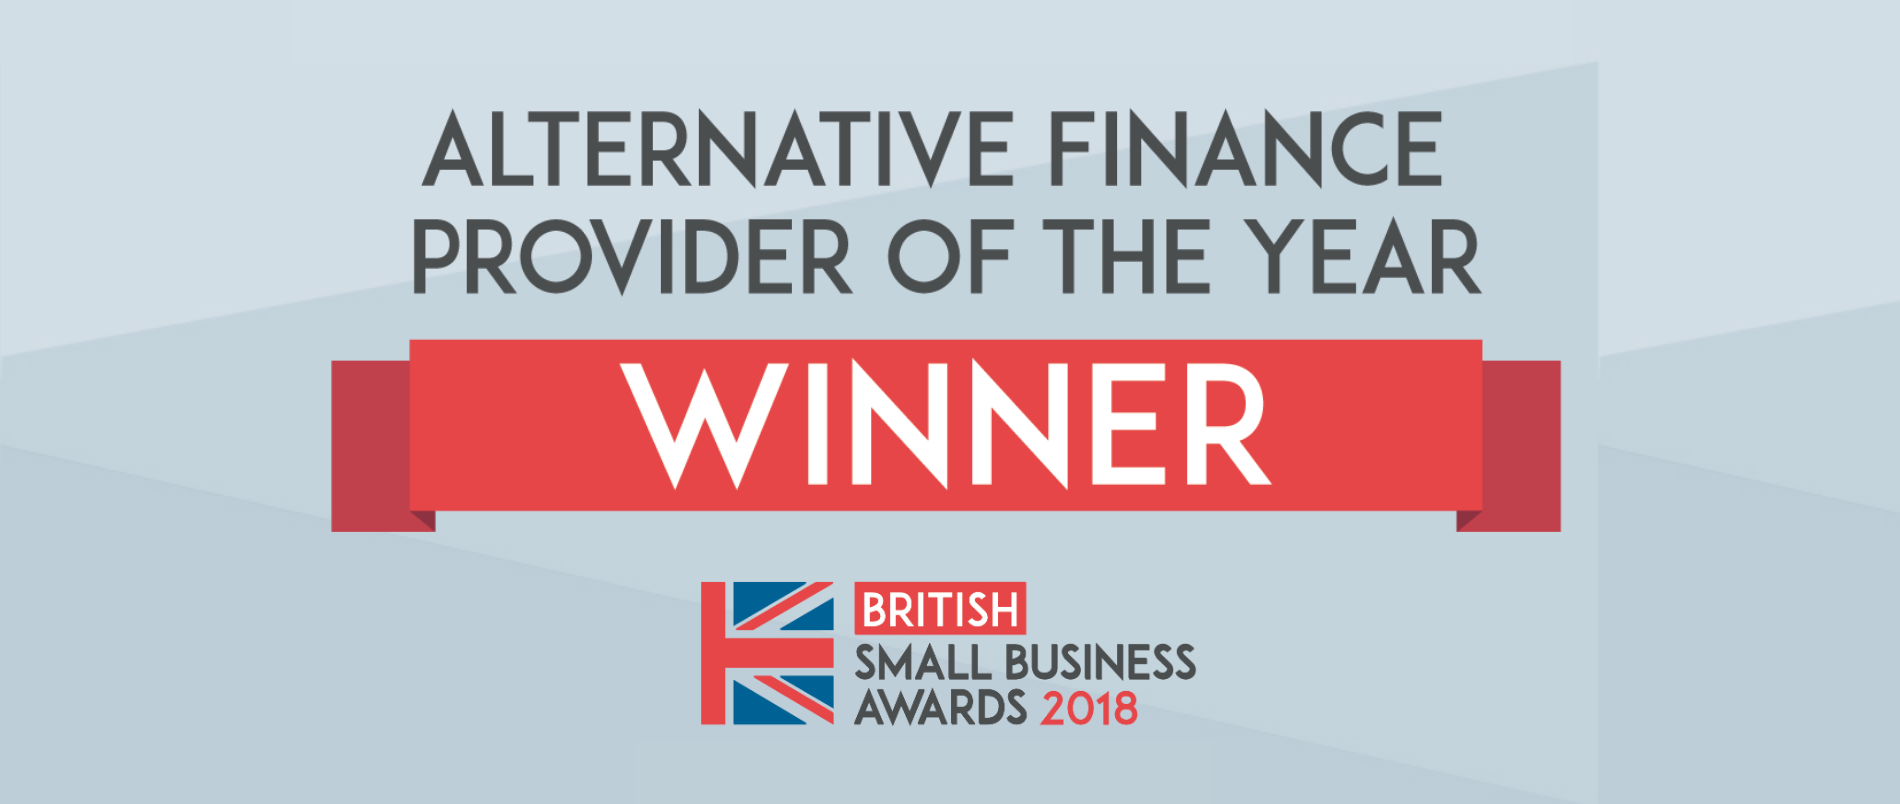 alternative finance provider of the year